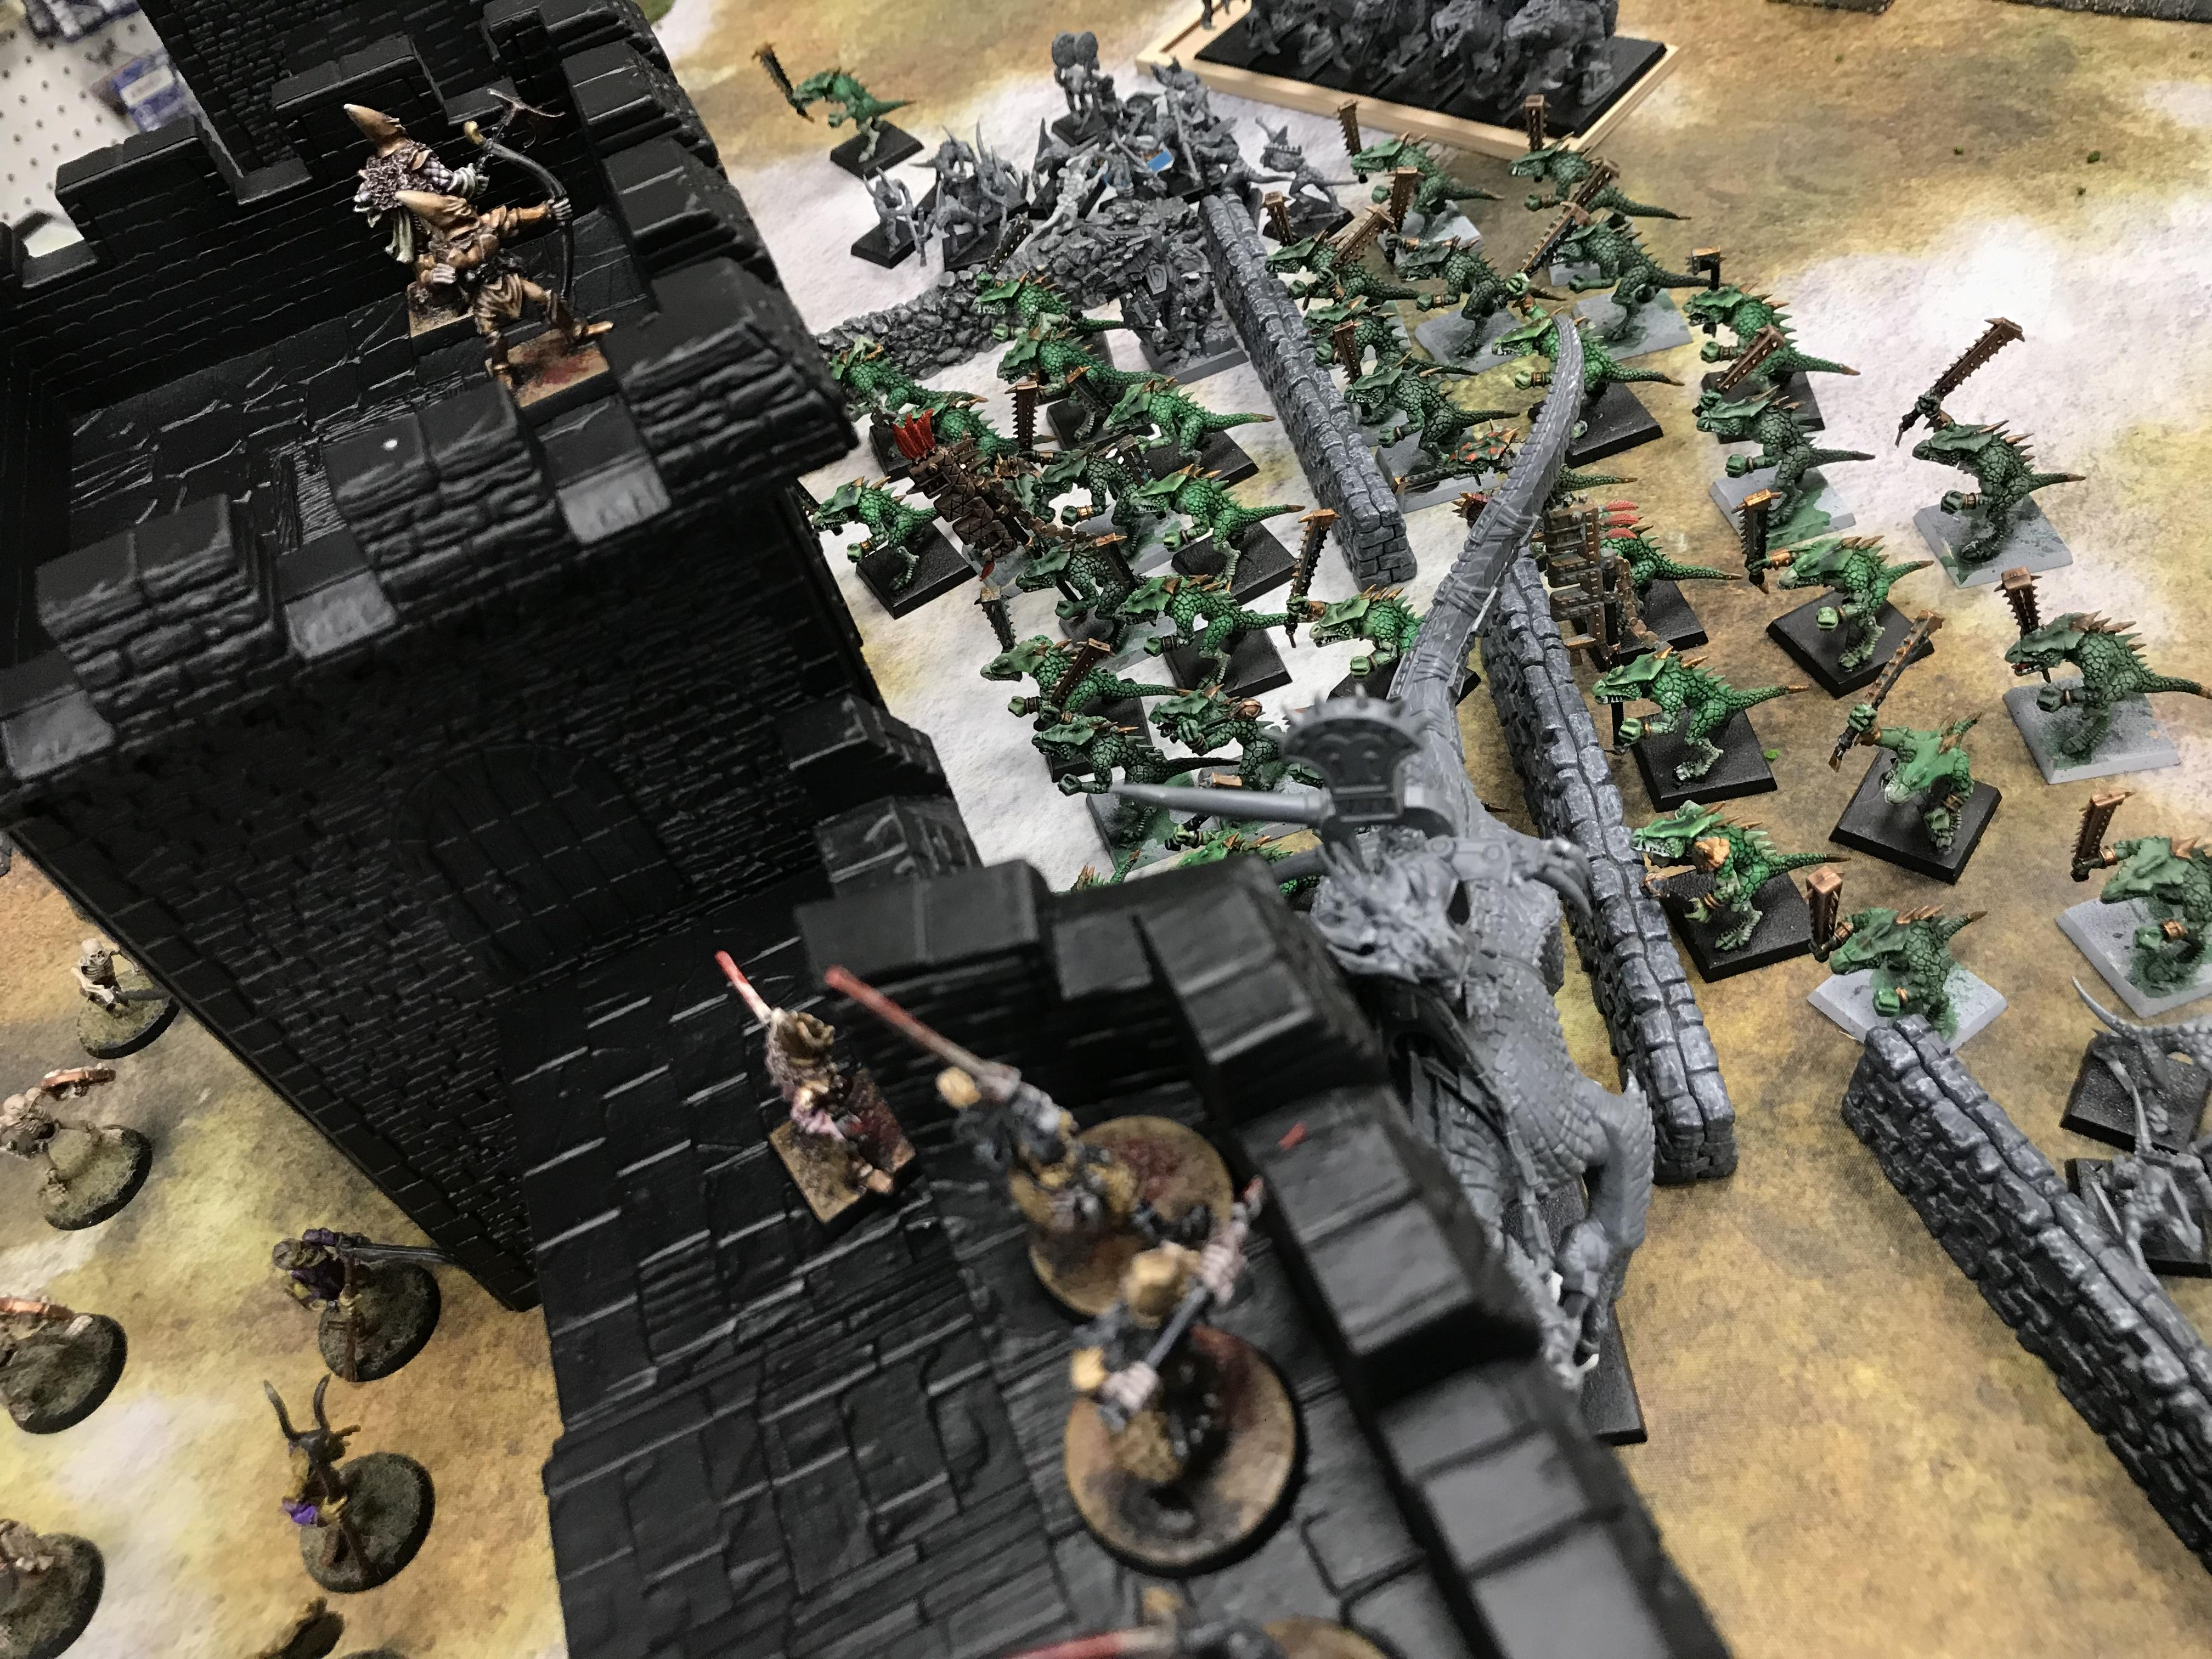 Age, Battle, Dark, Elves, Fortress, Game, Gods, Hold, Lizardmen, Lustria, Narrative, Necromancy, Of, Open, Out, Play, Seige, Sigmar, Slaanesh, Themed, Undead, Warhammer Fantasy